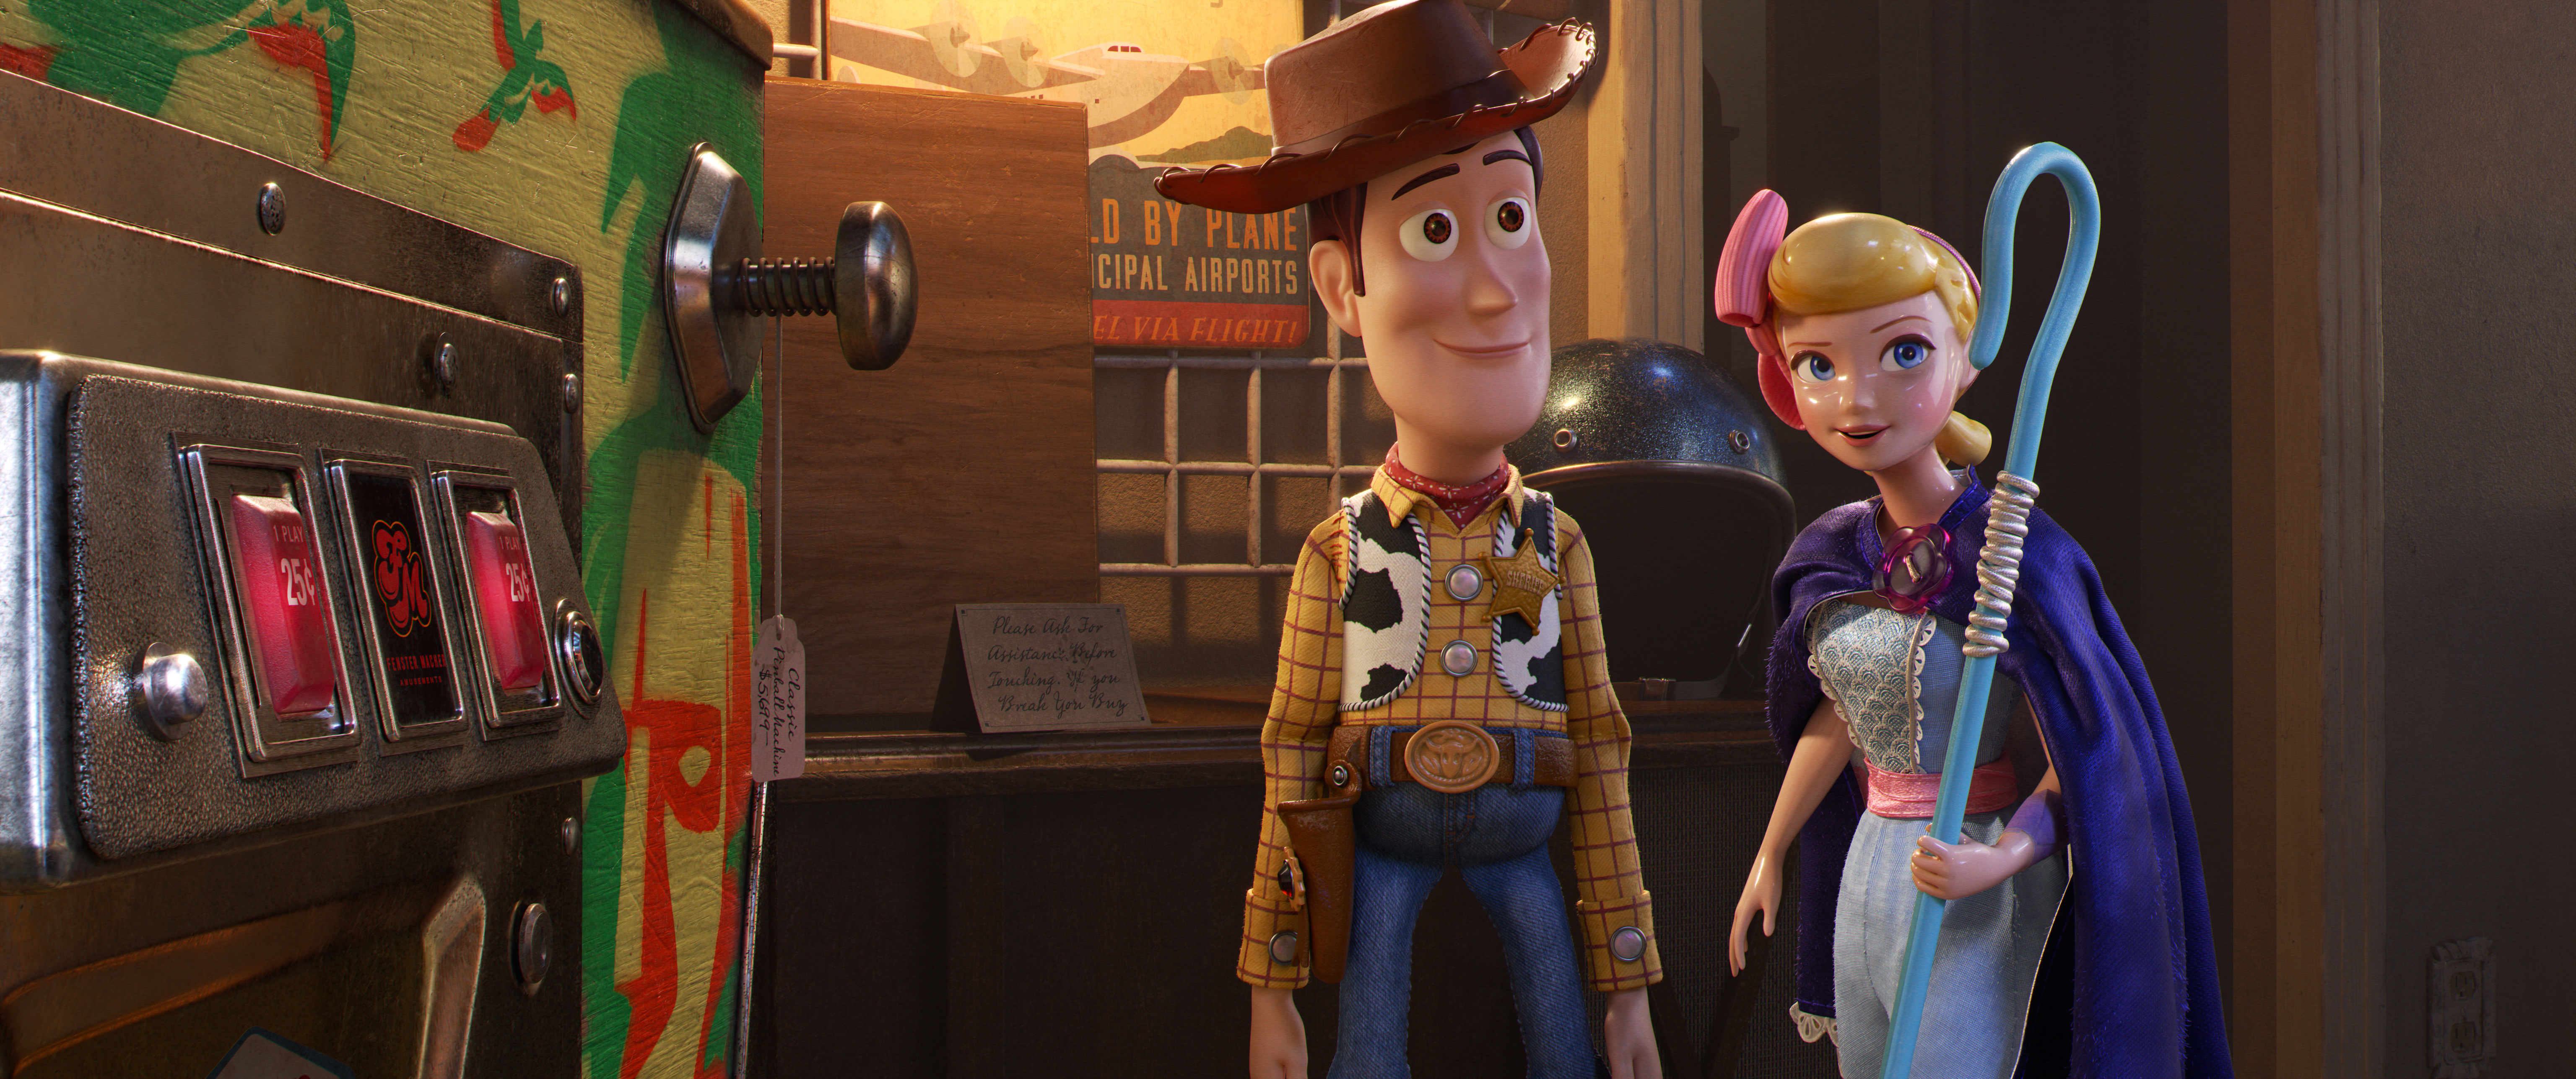 Toy Story 4 4k Ultra Hd Wallpaper Background Image